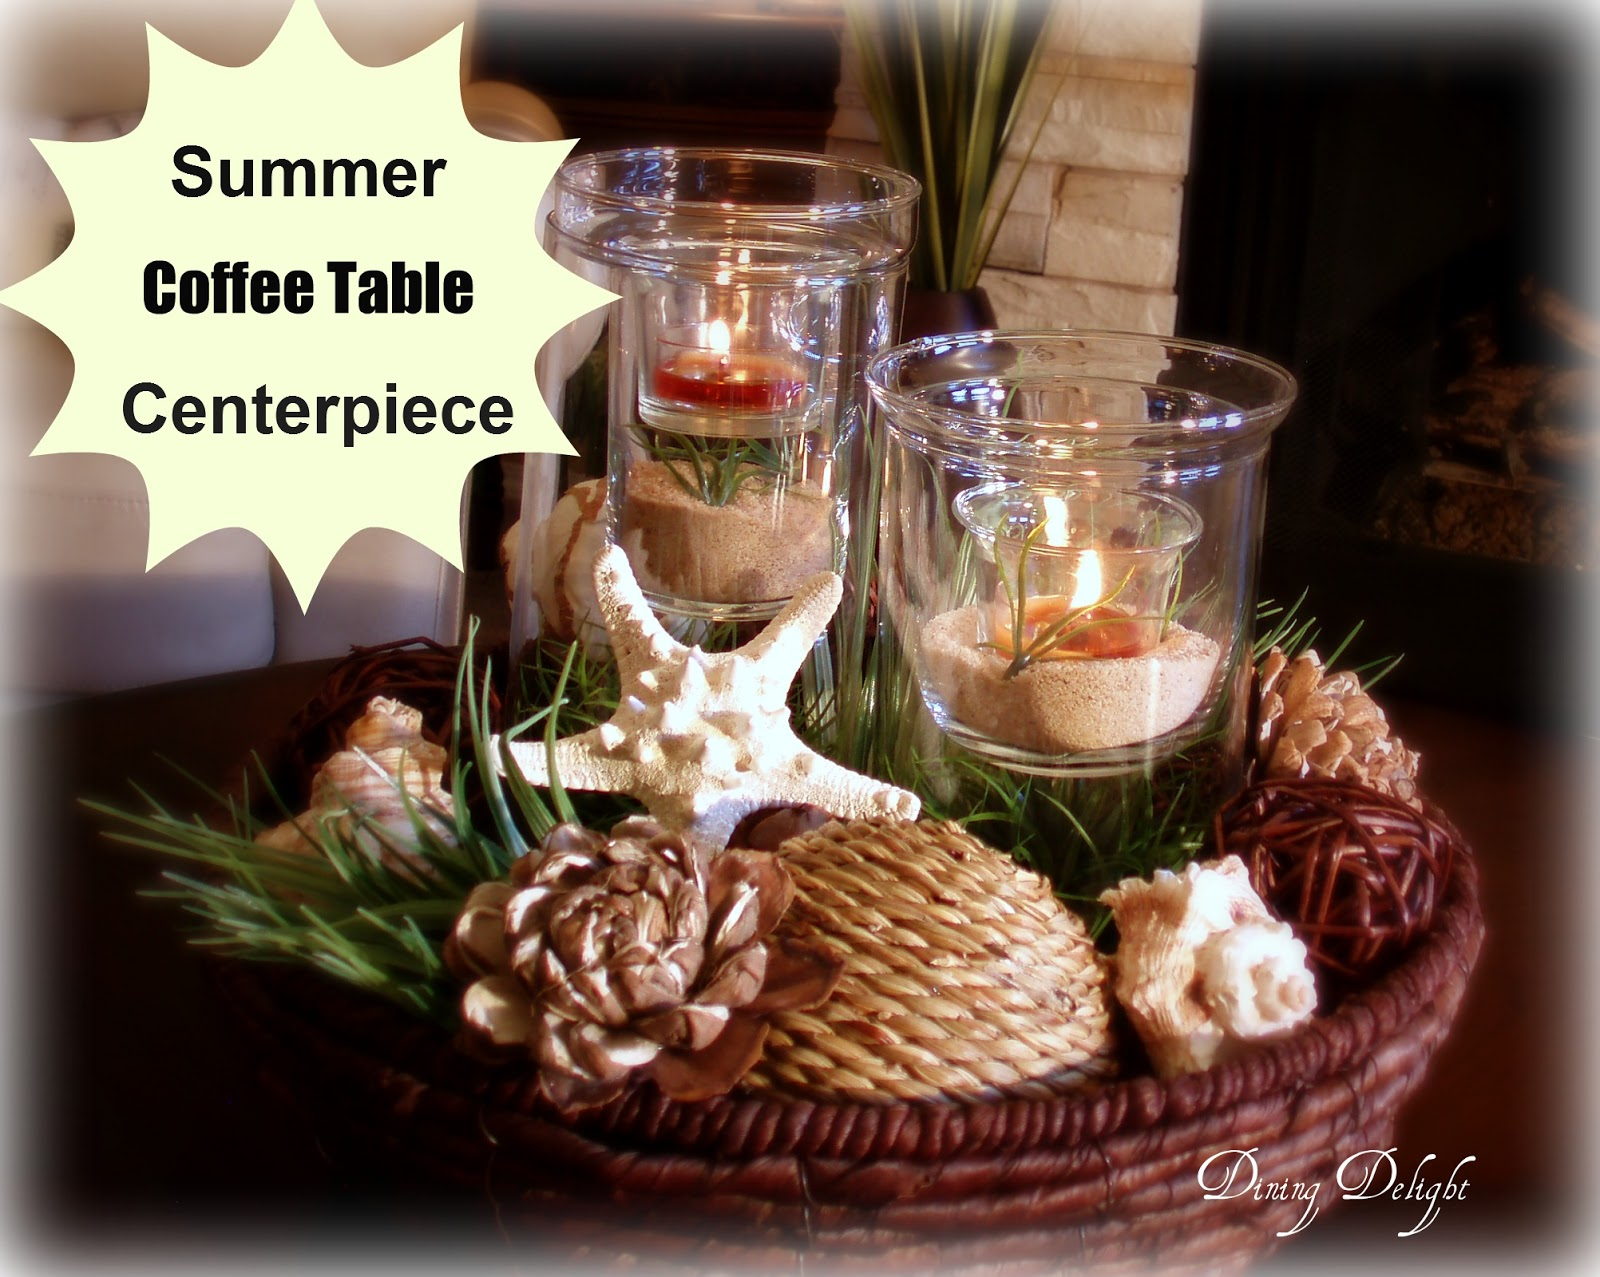 Coffee Table Centerpiece Classy Of Coffee Table Summer Centerpiece Images